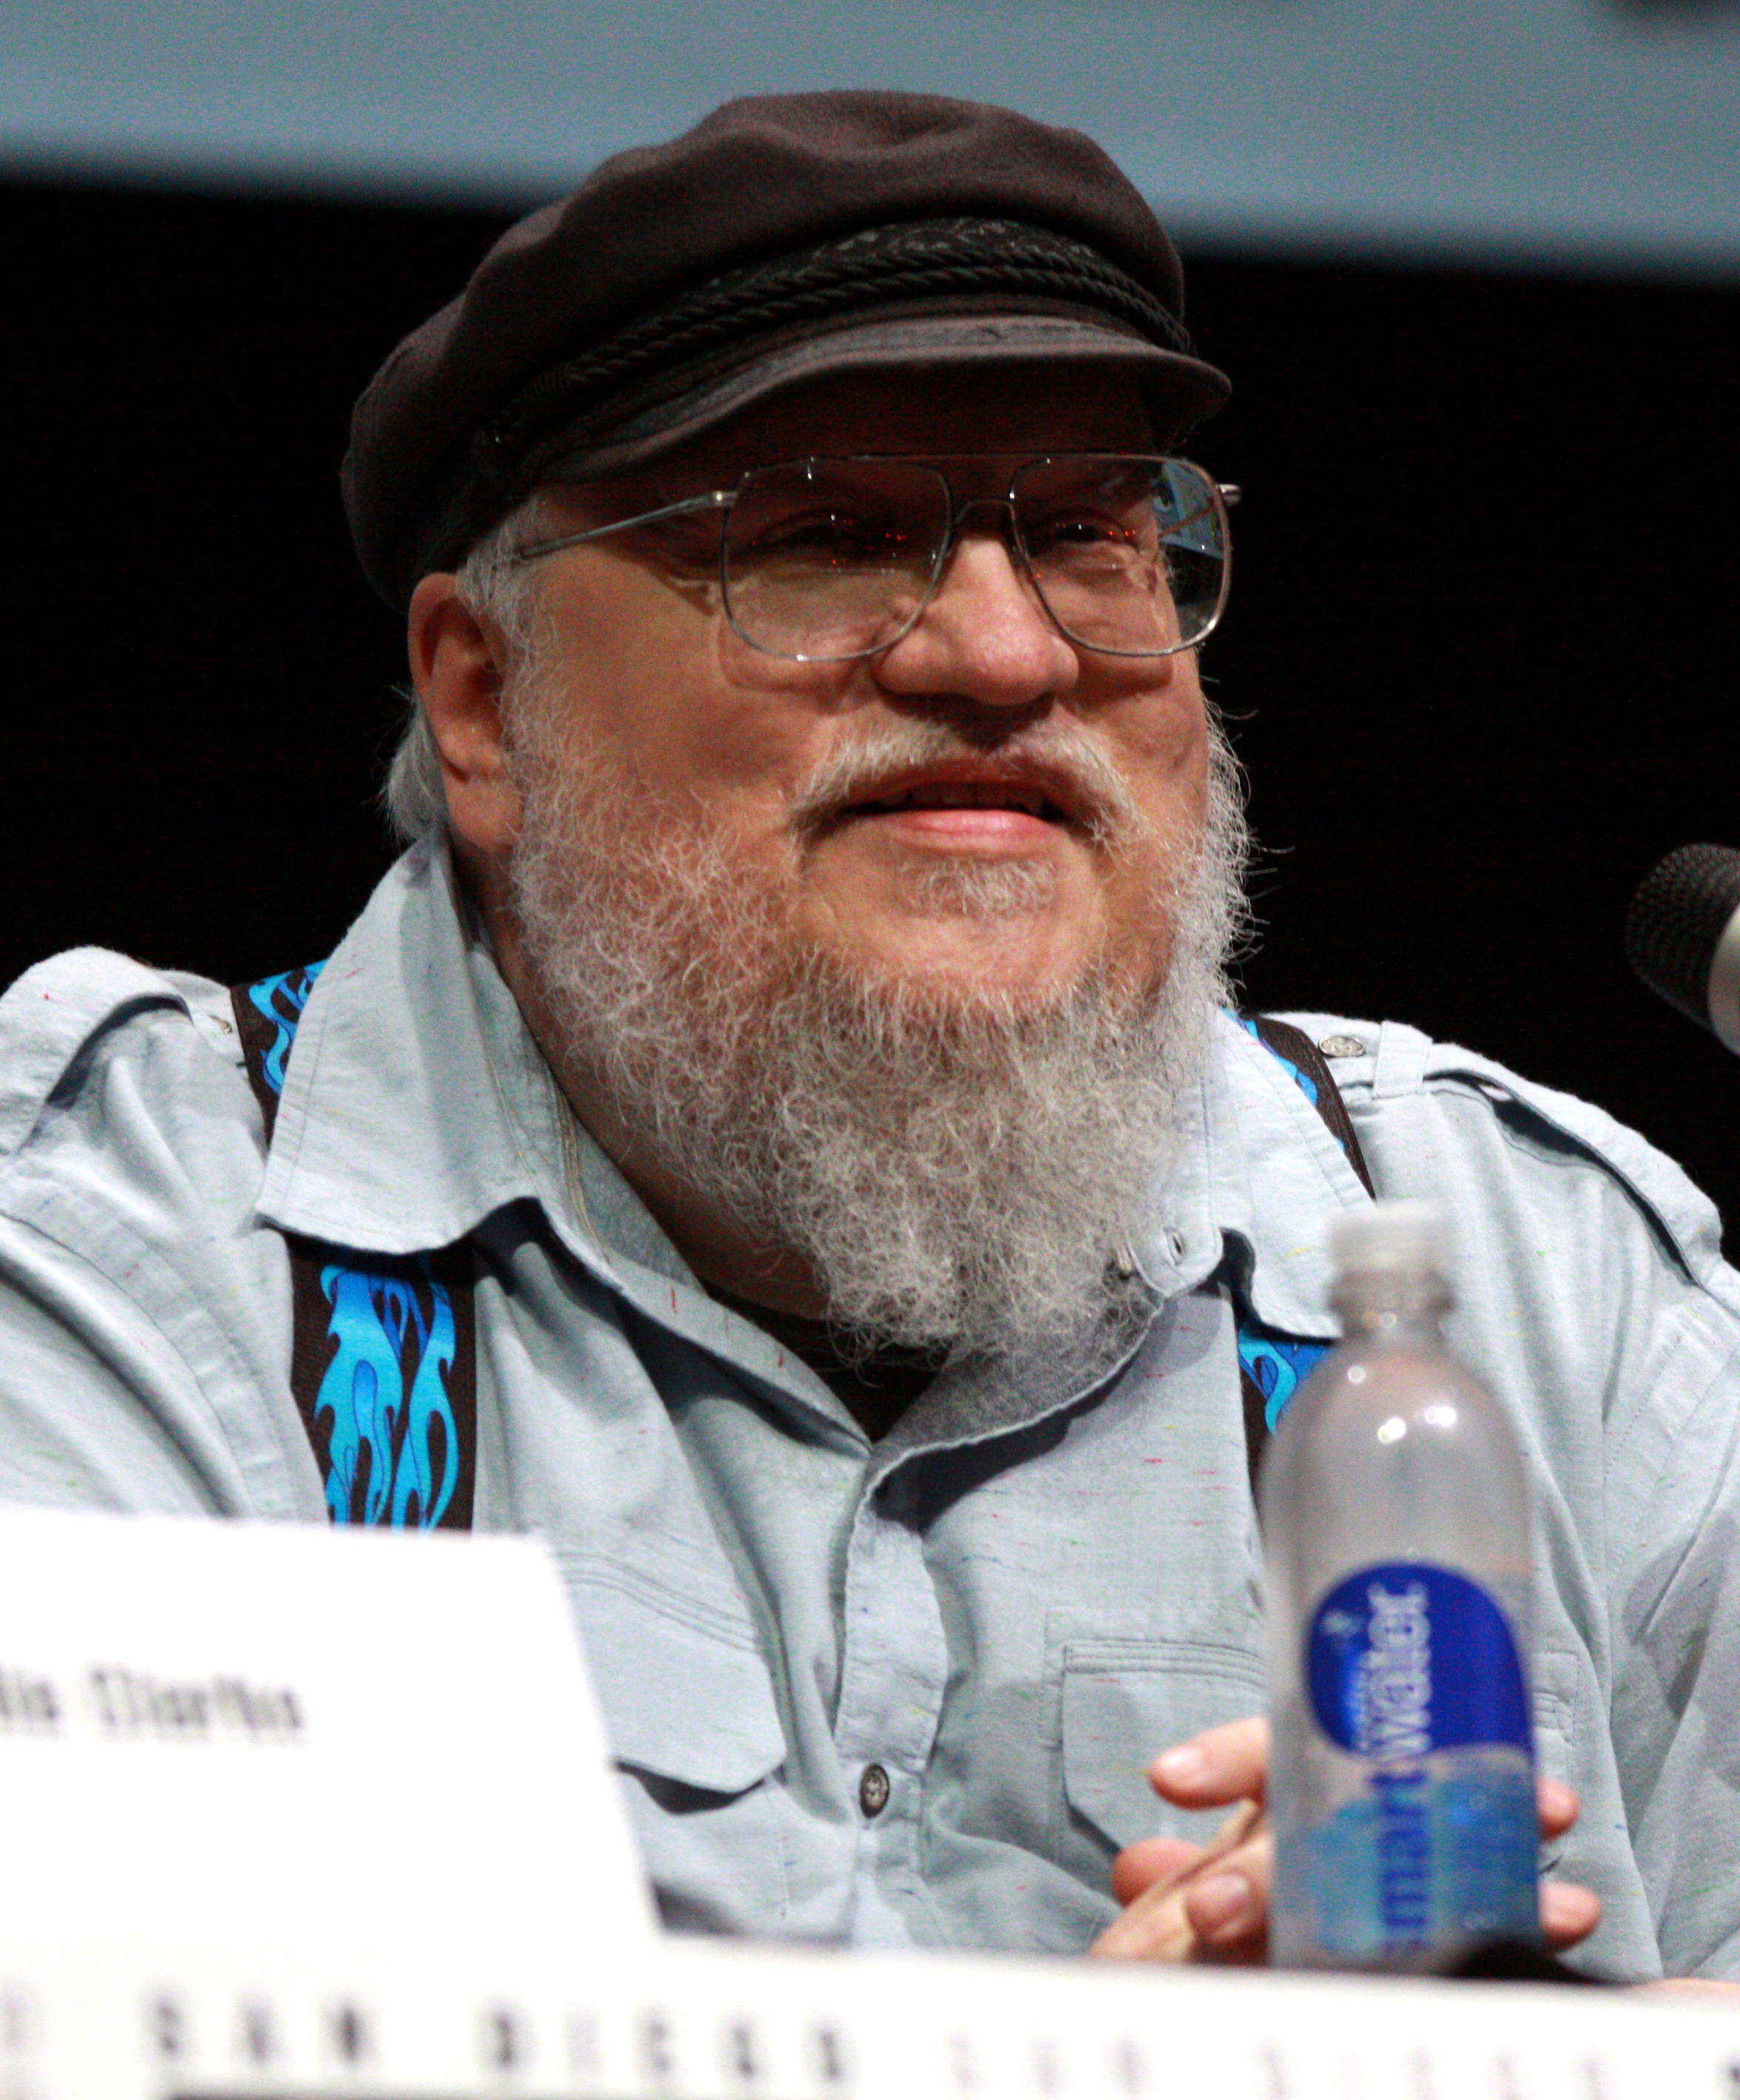 George RR Martin Confirmed Book Launch In January 2017?